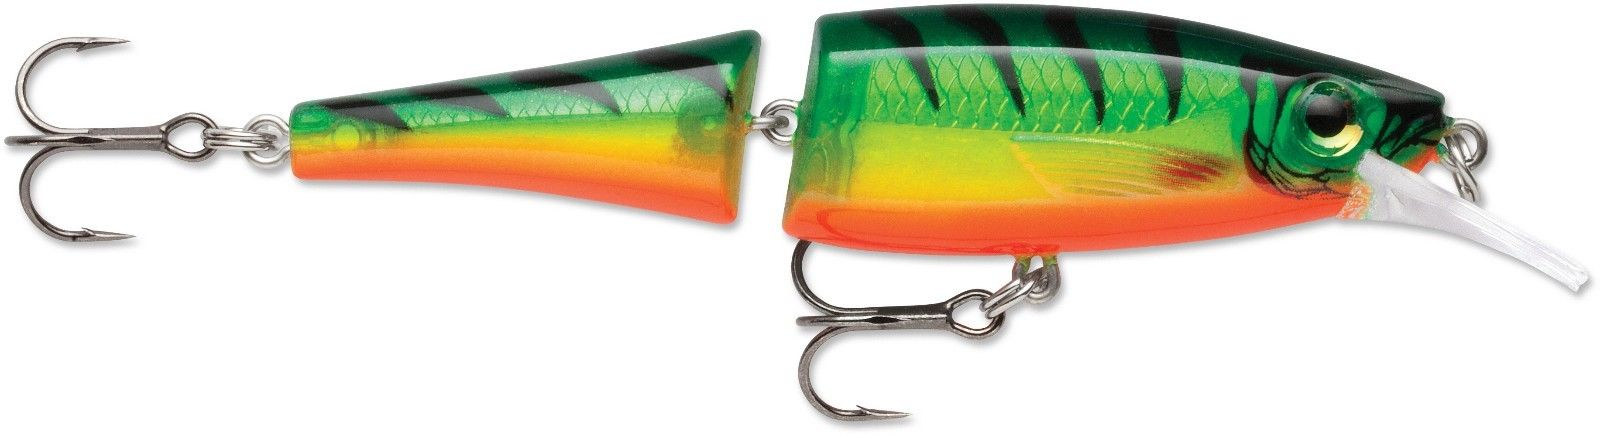 Rapala Balsa Xtreme BX Jointed Minnow 09 Medium Diving Jerkbait